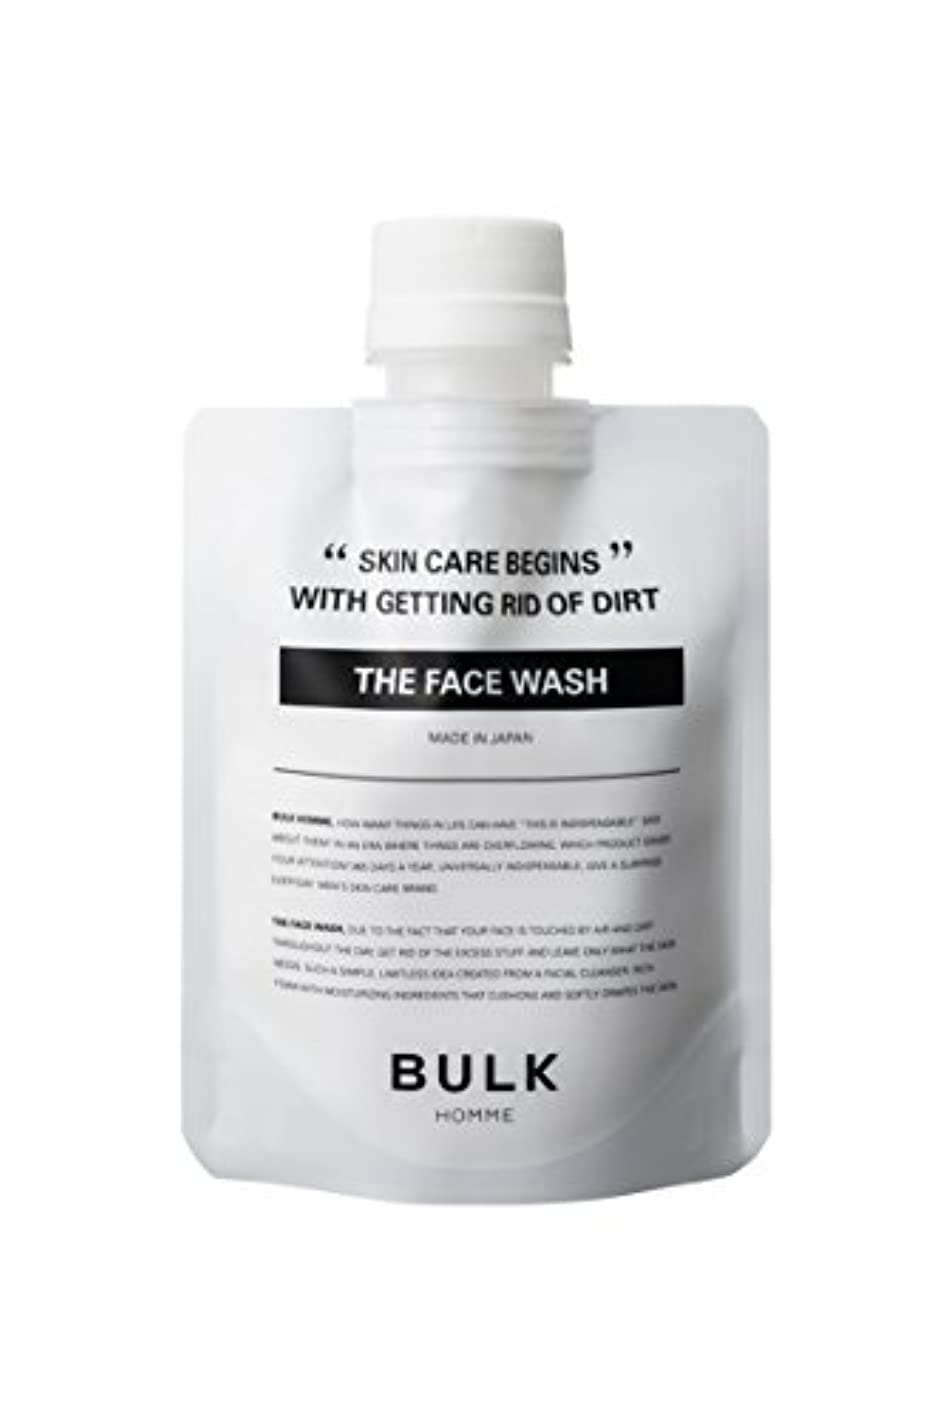 かわす夫胸BULK HOMME THE FACE WASH 洗顔料 100g